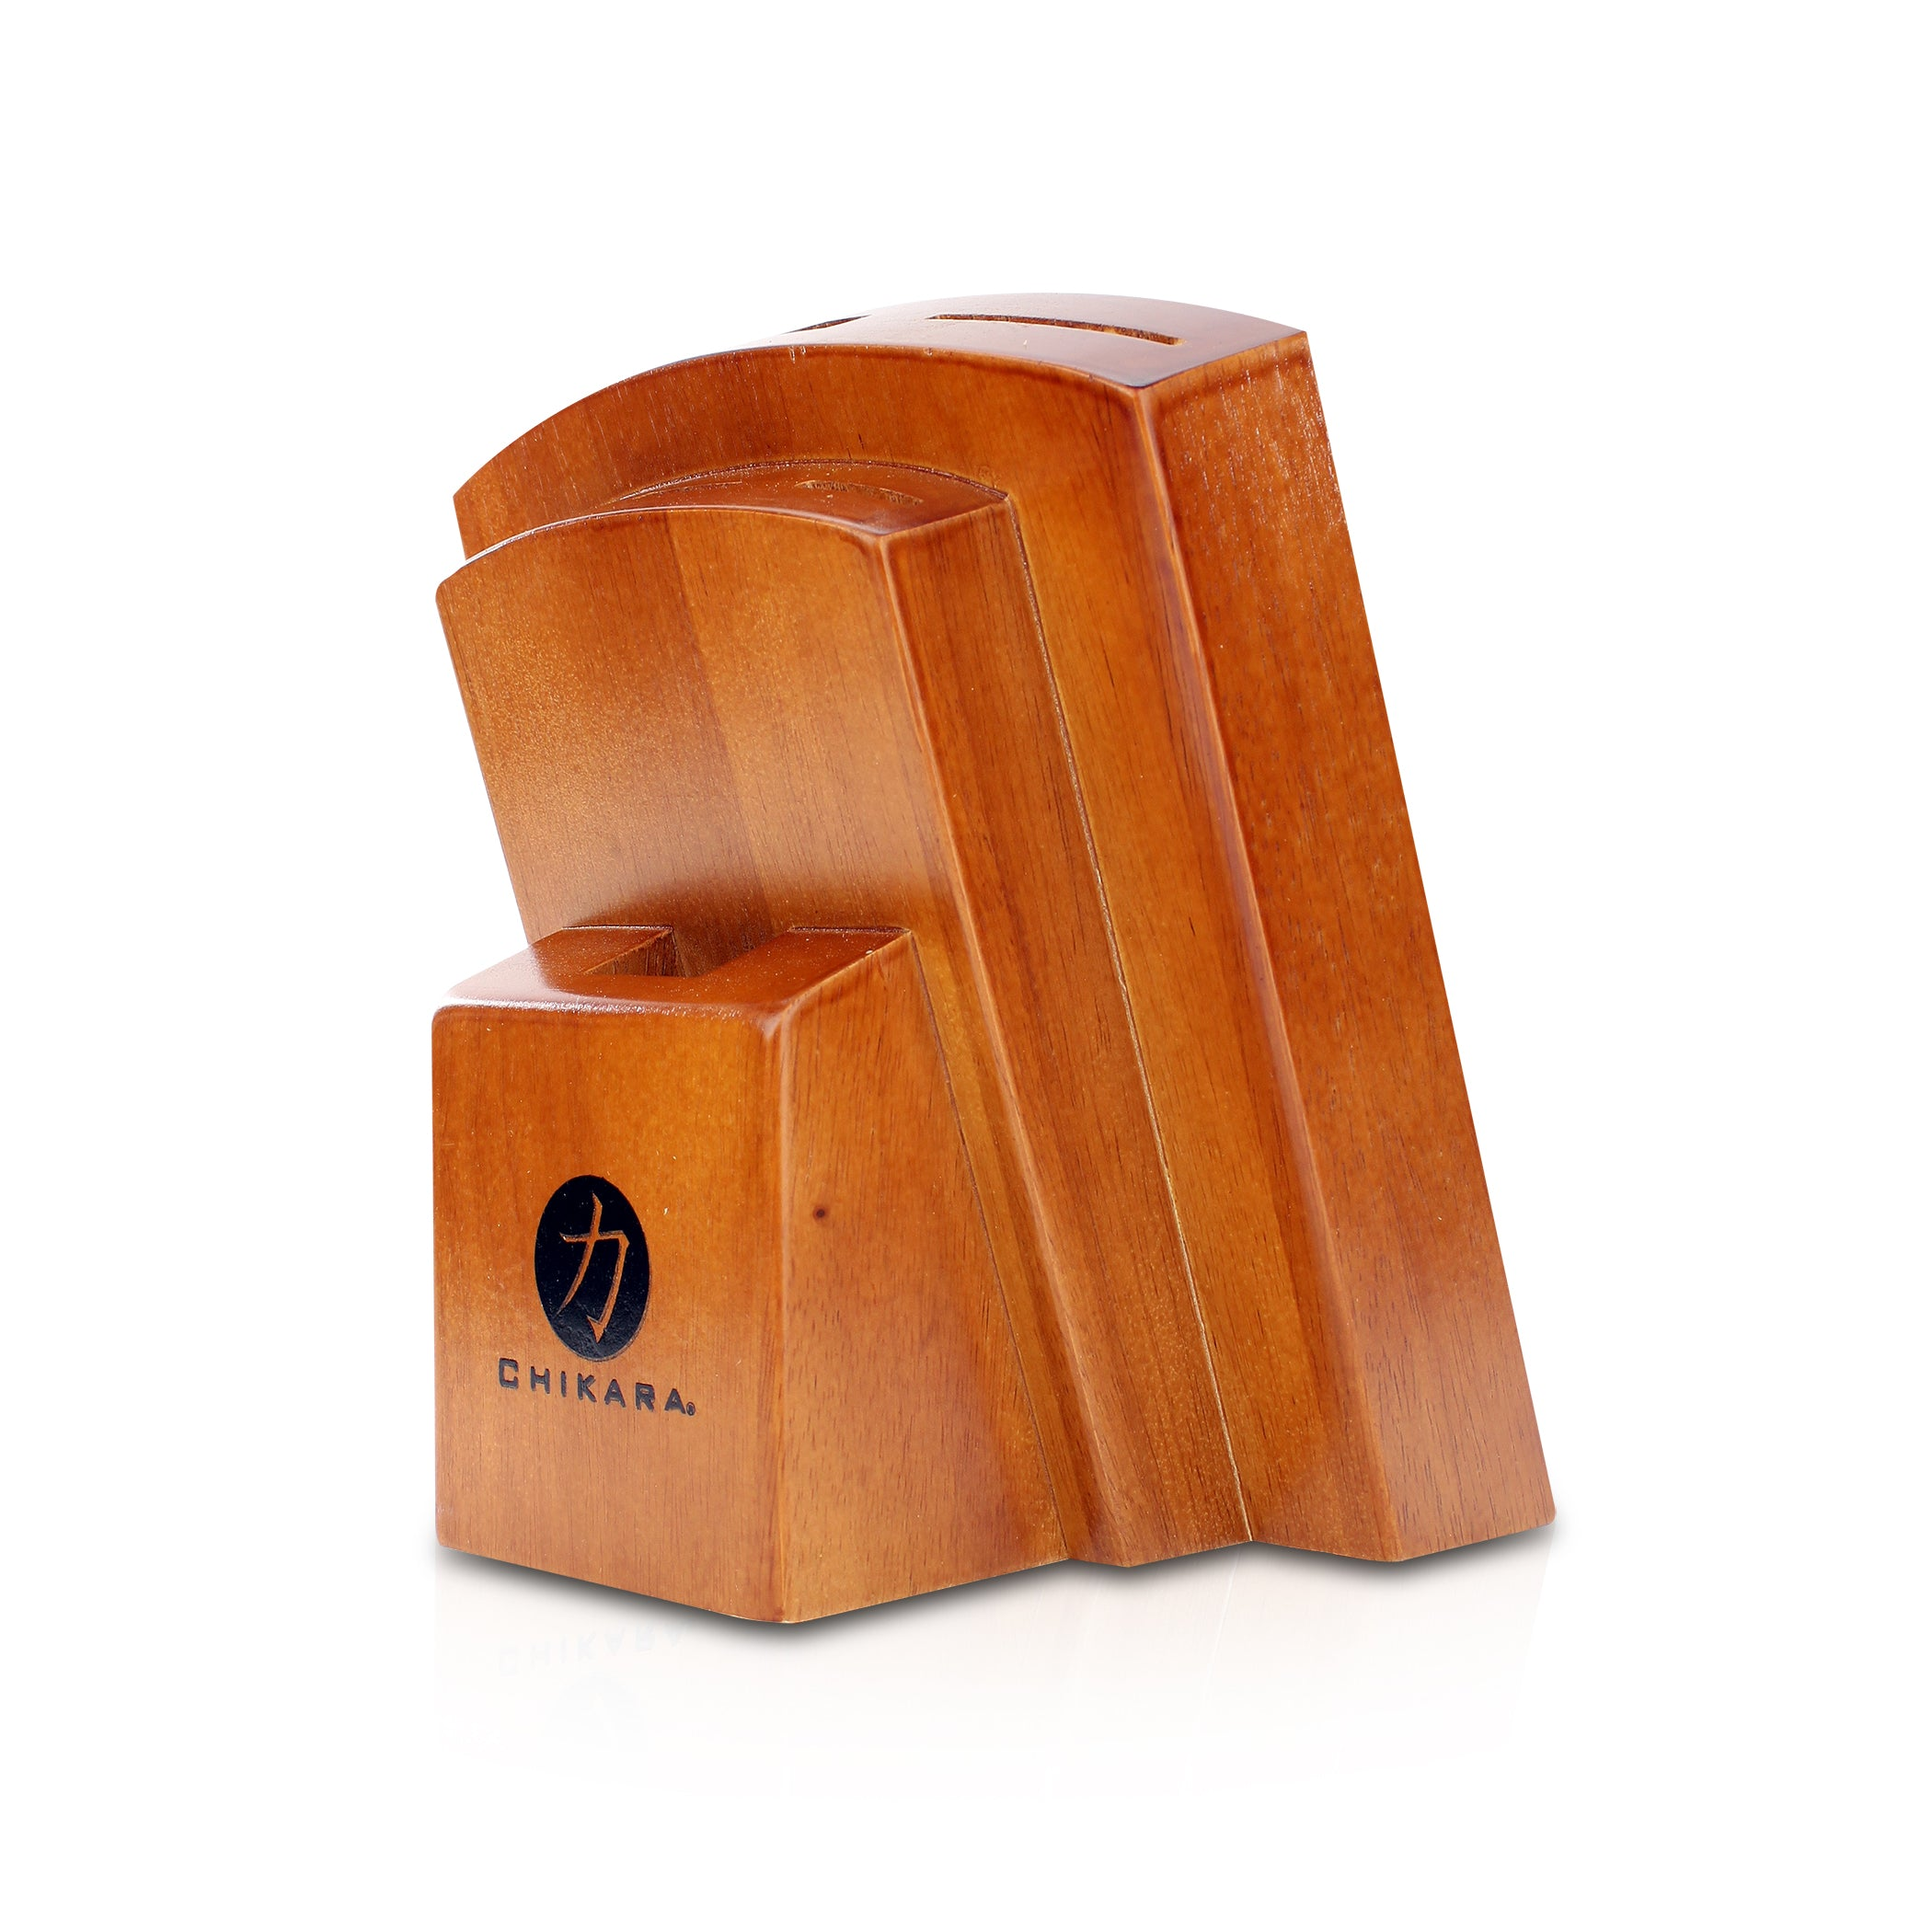 Ginsu 7-Slot Knife Block, Toffee Finish